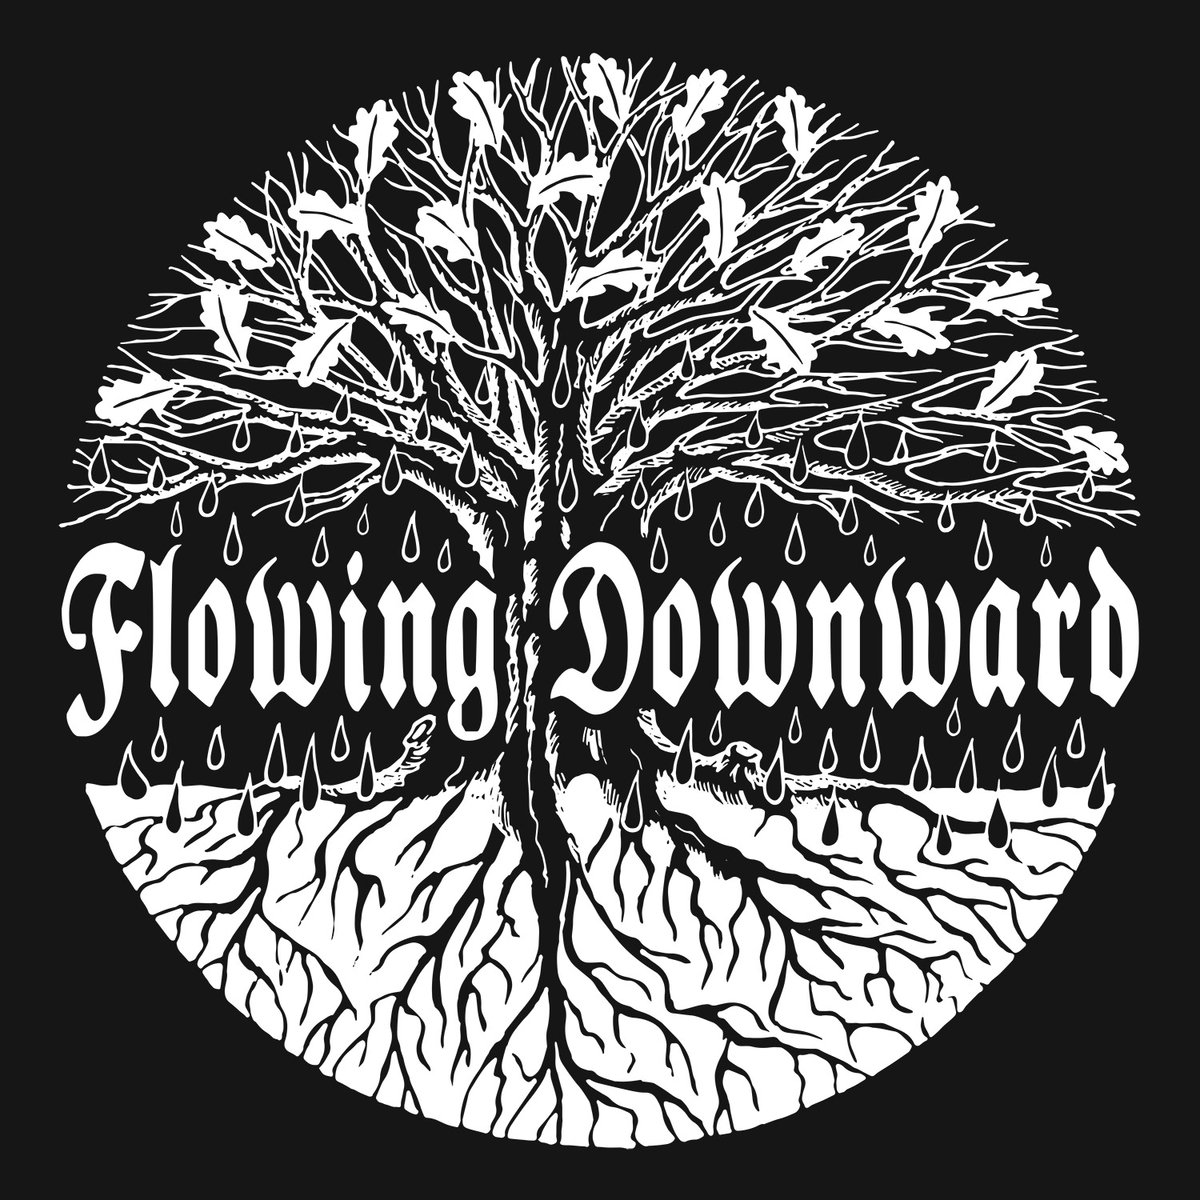 Avantgarde Music / Flowing Downward